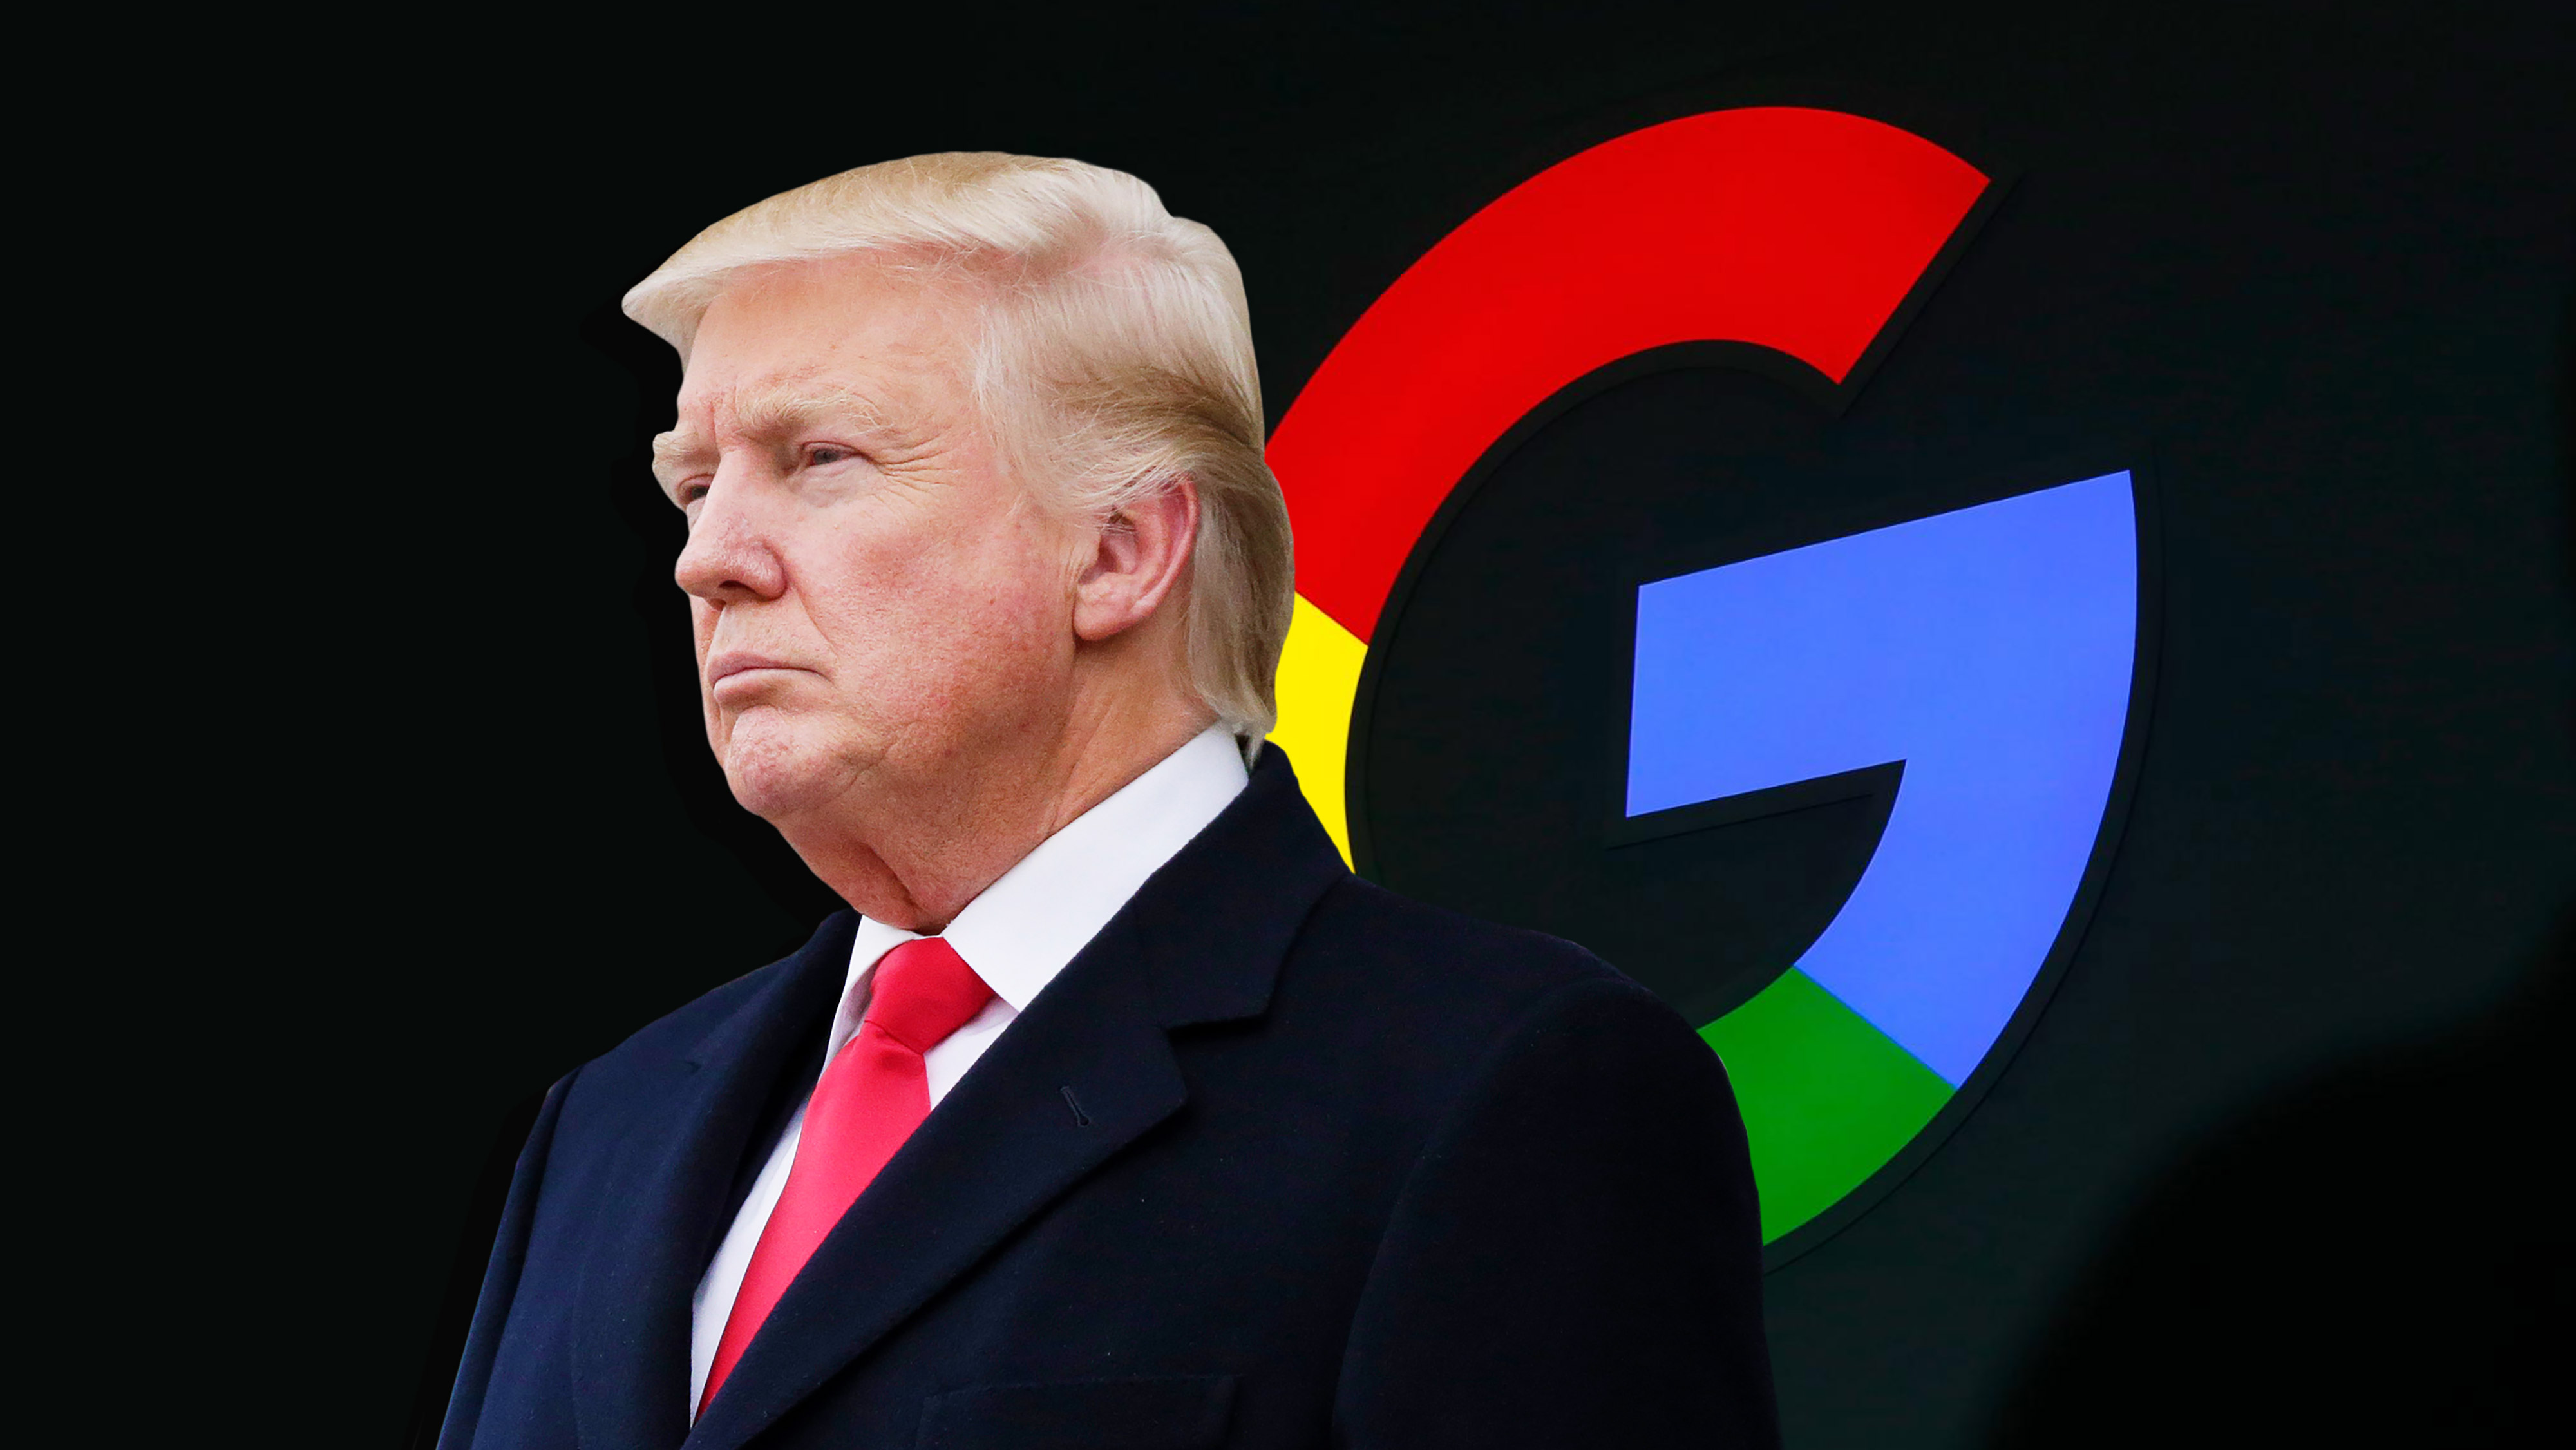 Google employees discussed modifying search results to contradict Trump travel ban